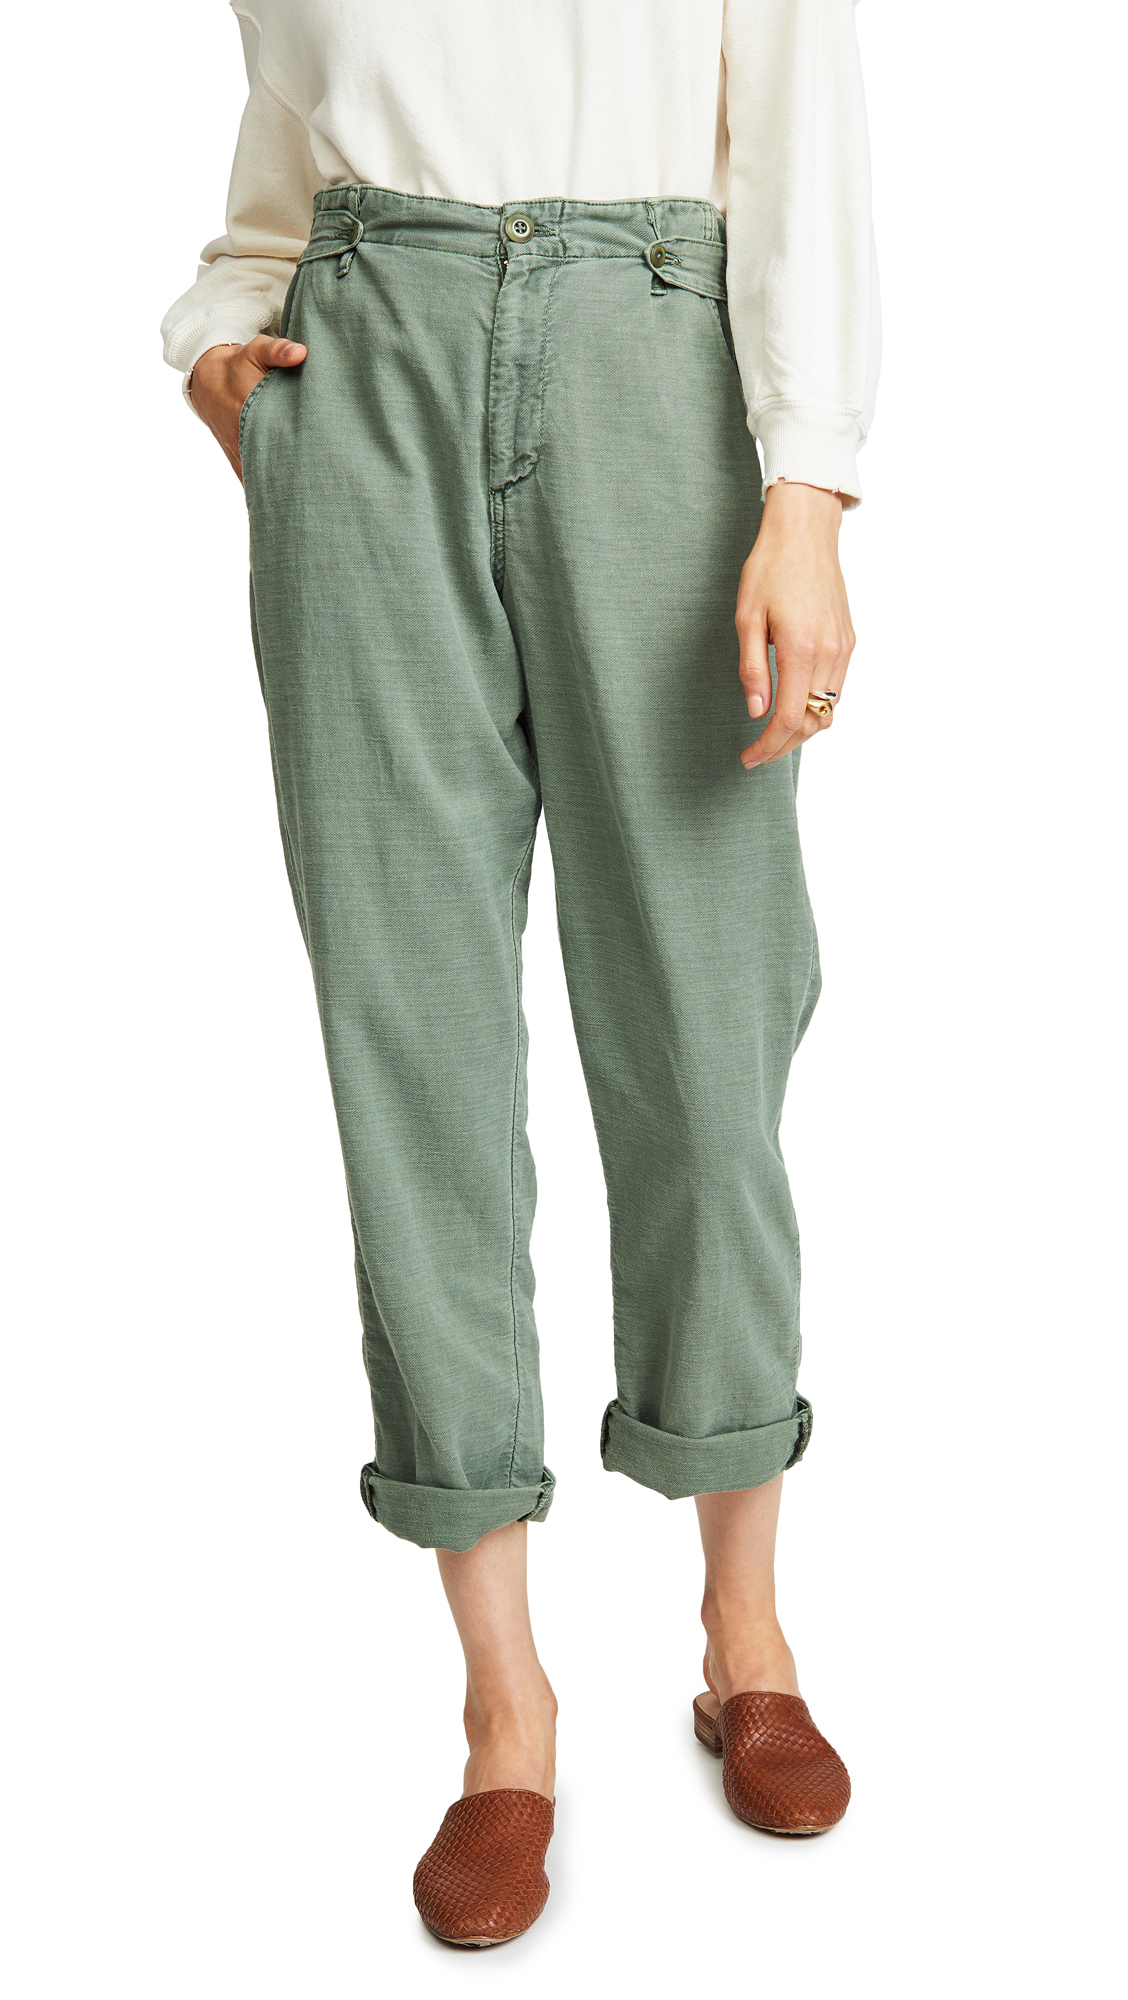 THE GREAT. The Explorer Trousers In Anitque Army